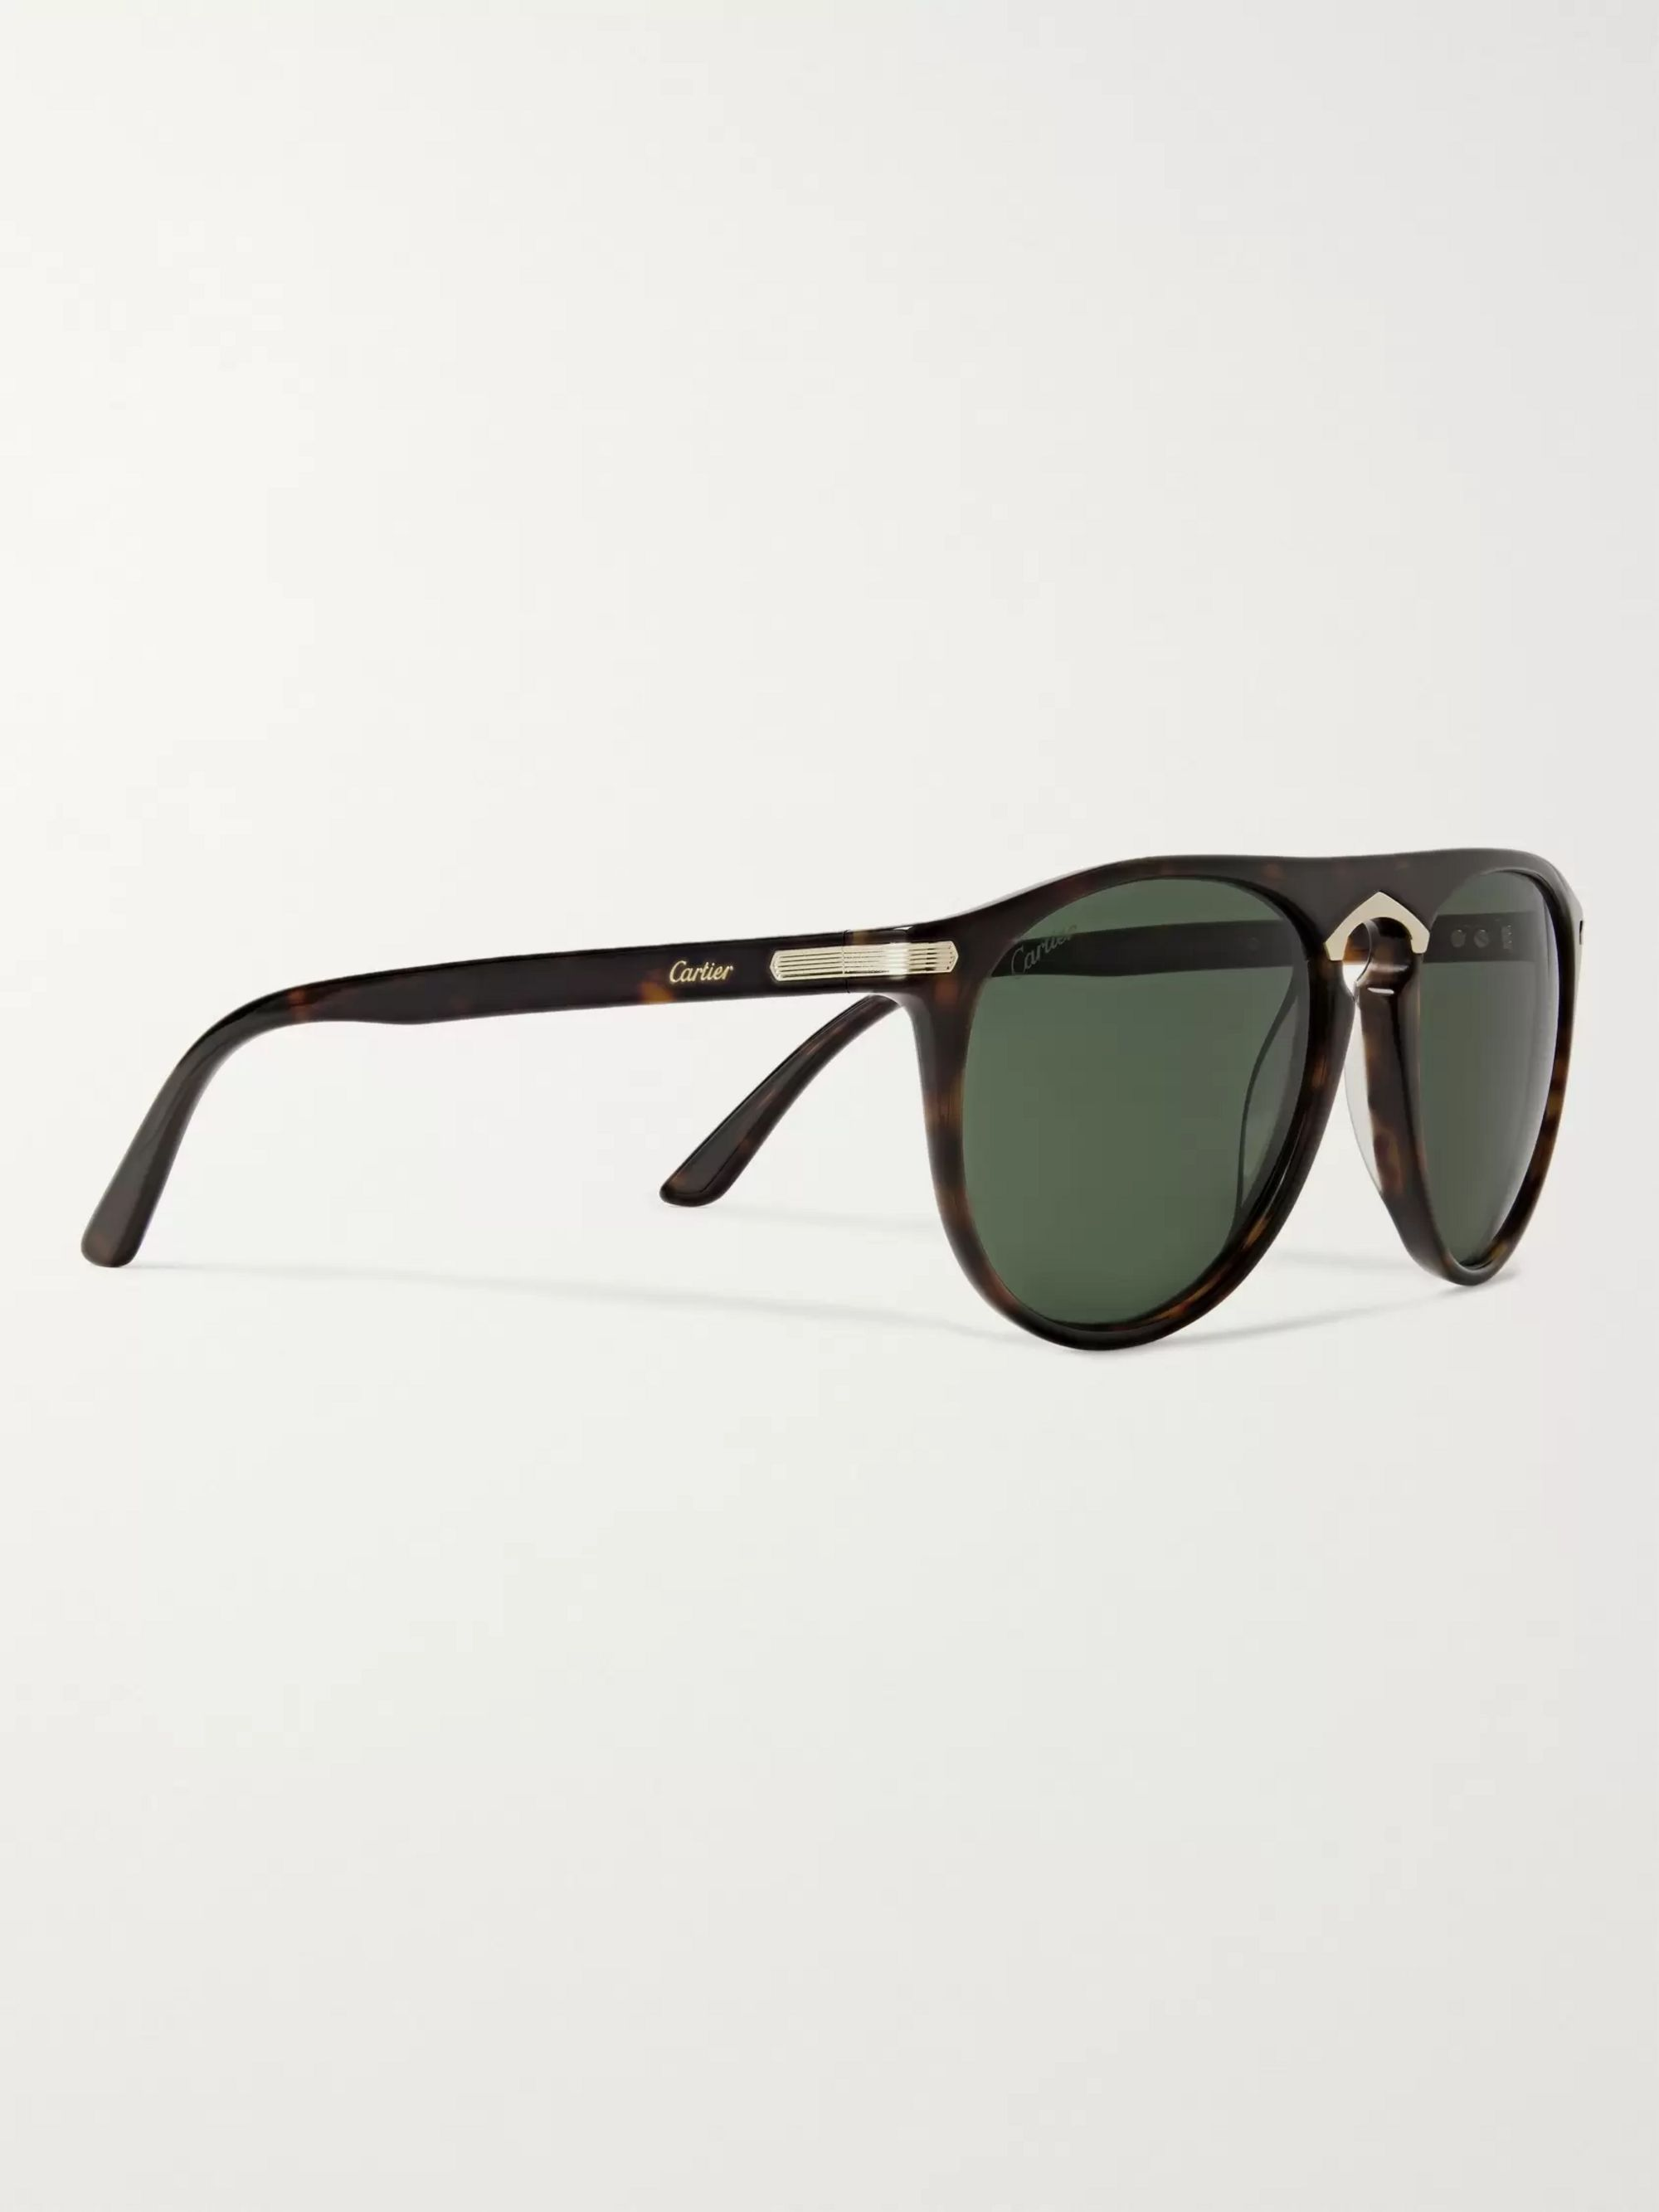 Cartier Eyewear Aviator-Style Tortoiseshell Acetate and Gold-Tone Sunglasses